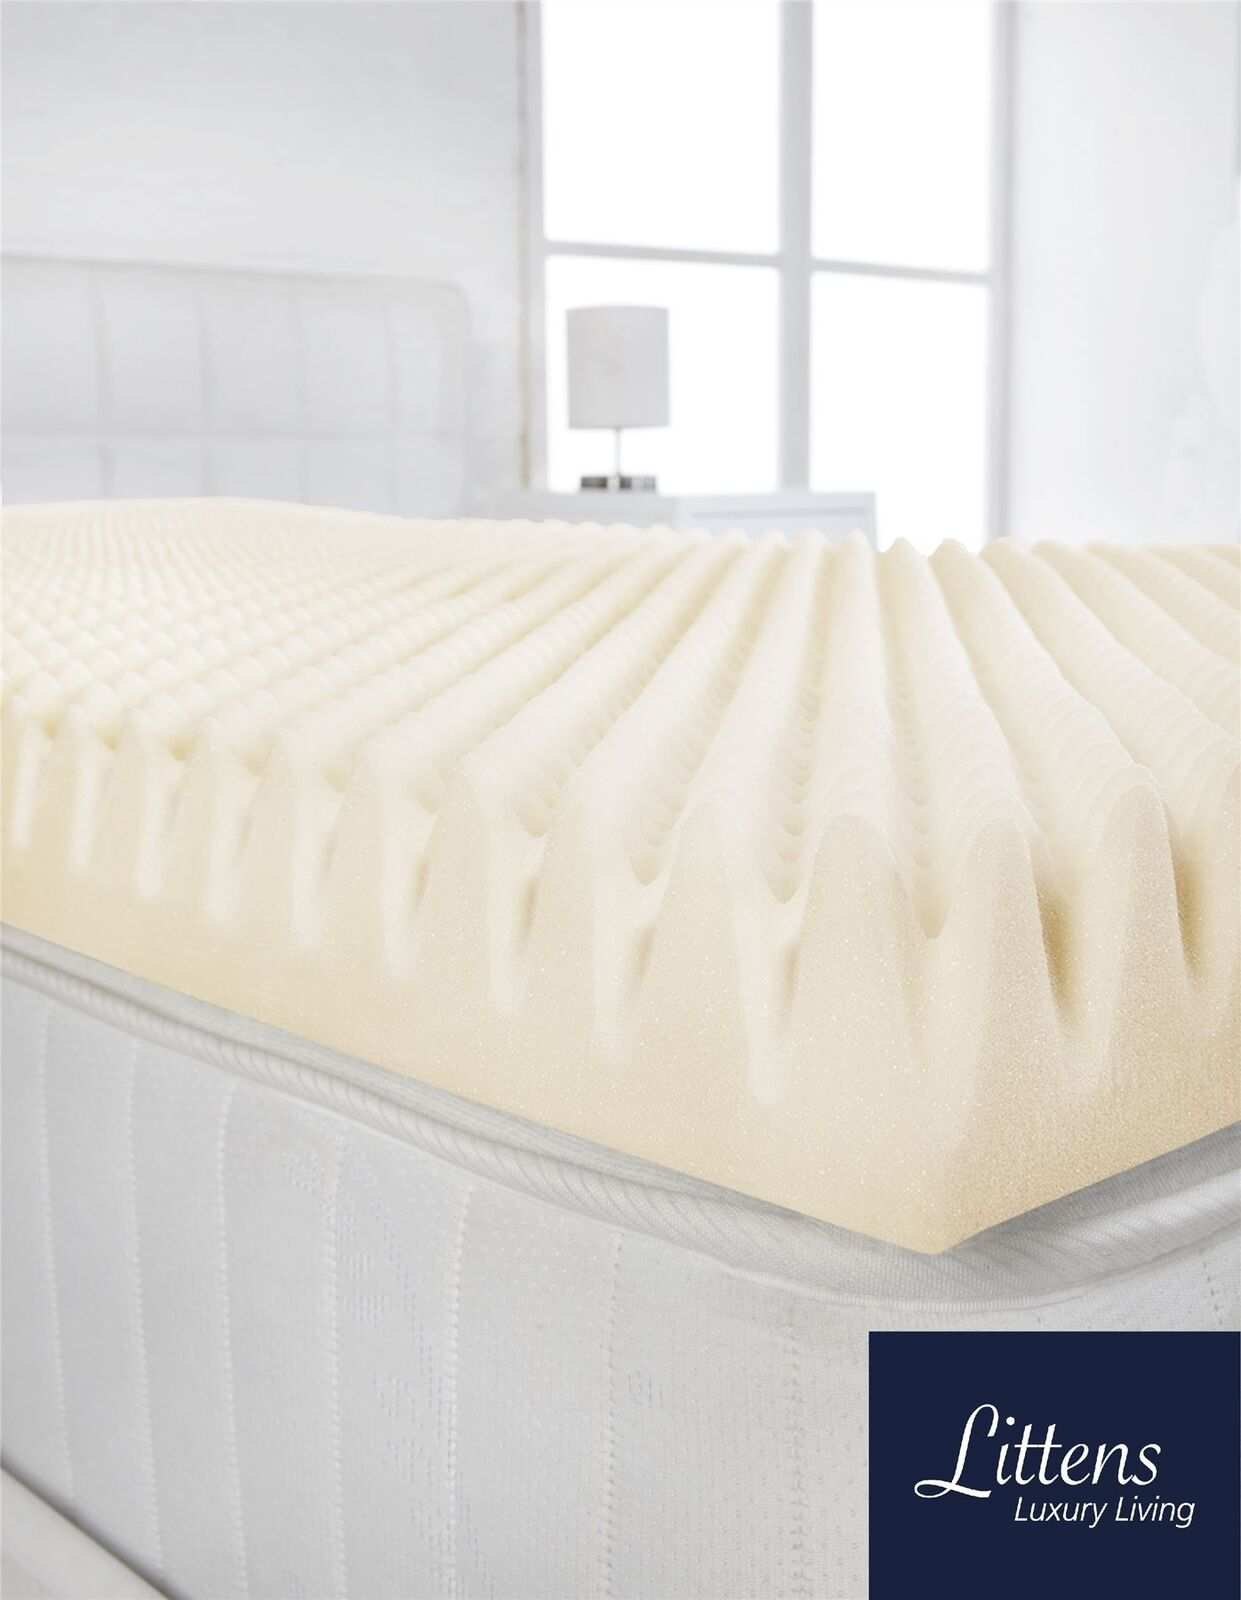 4  Extra Deep Single Bed Memory Foam Mattress Topper Profile, Egg Shell Crate